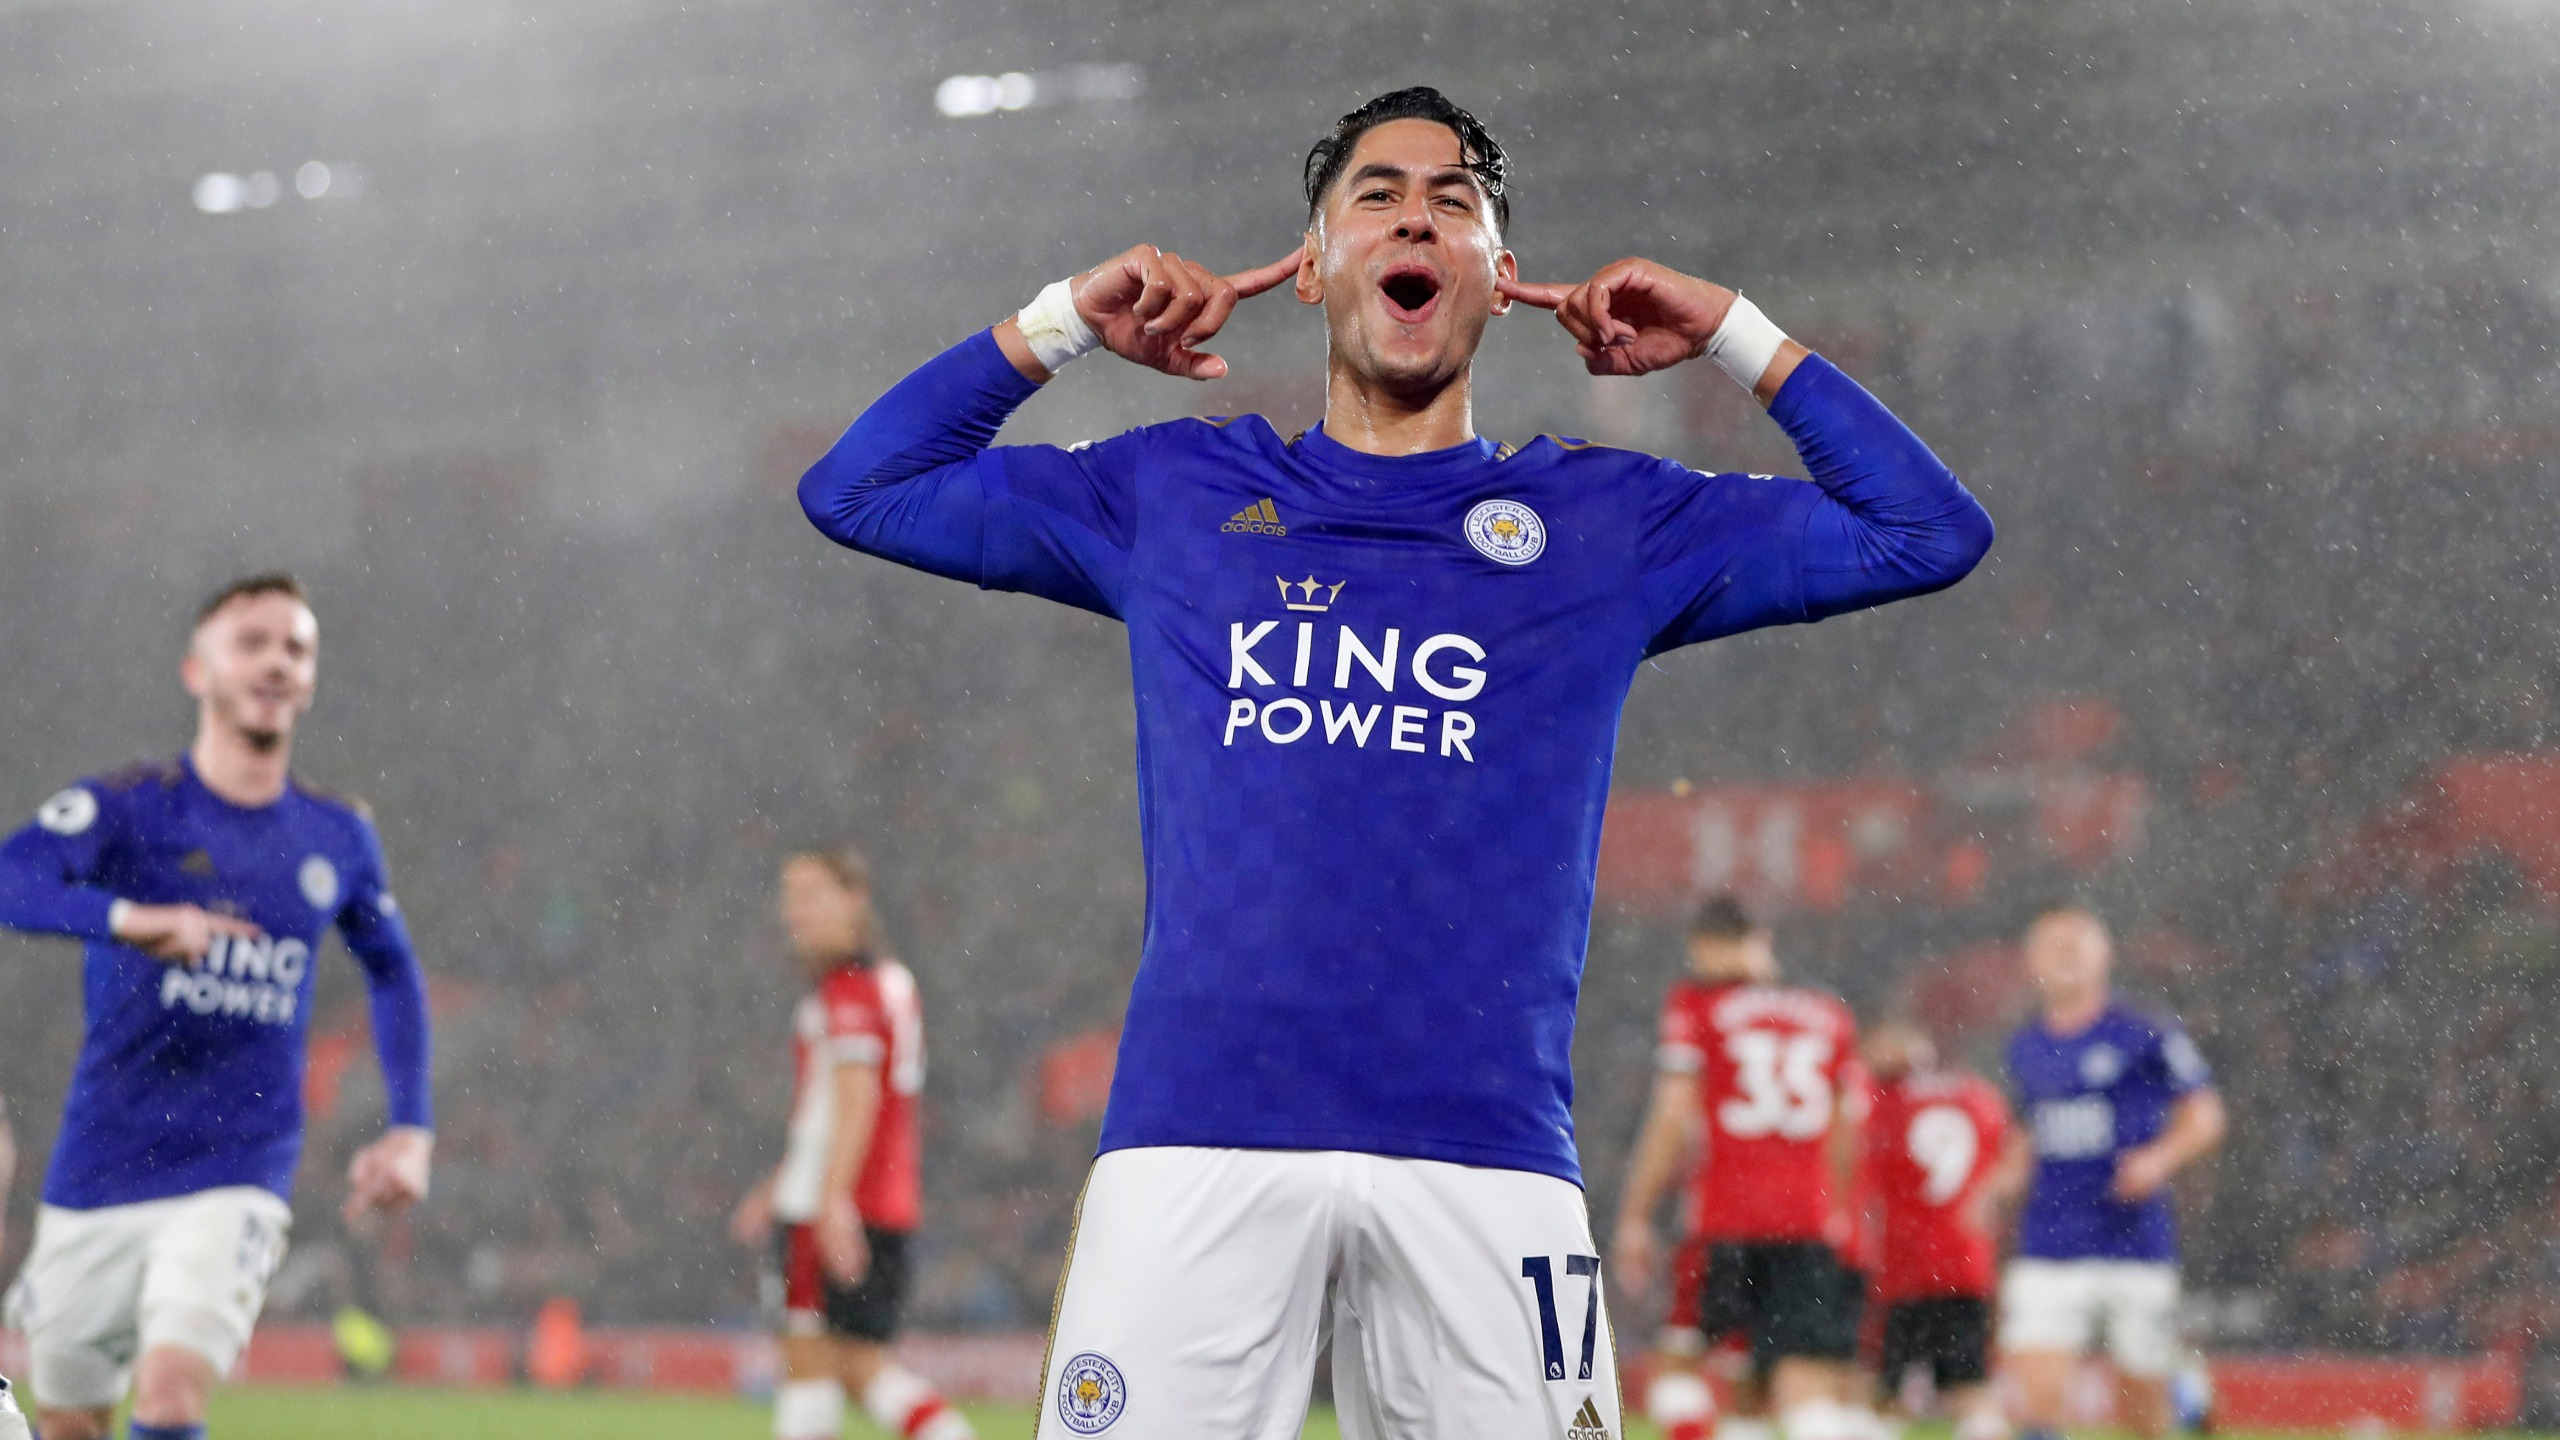 Leicester Ties Biggest Epl Win With 9 0 Rout Of Southampton Wdvm25 Dcw50 Washington Dc